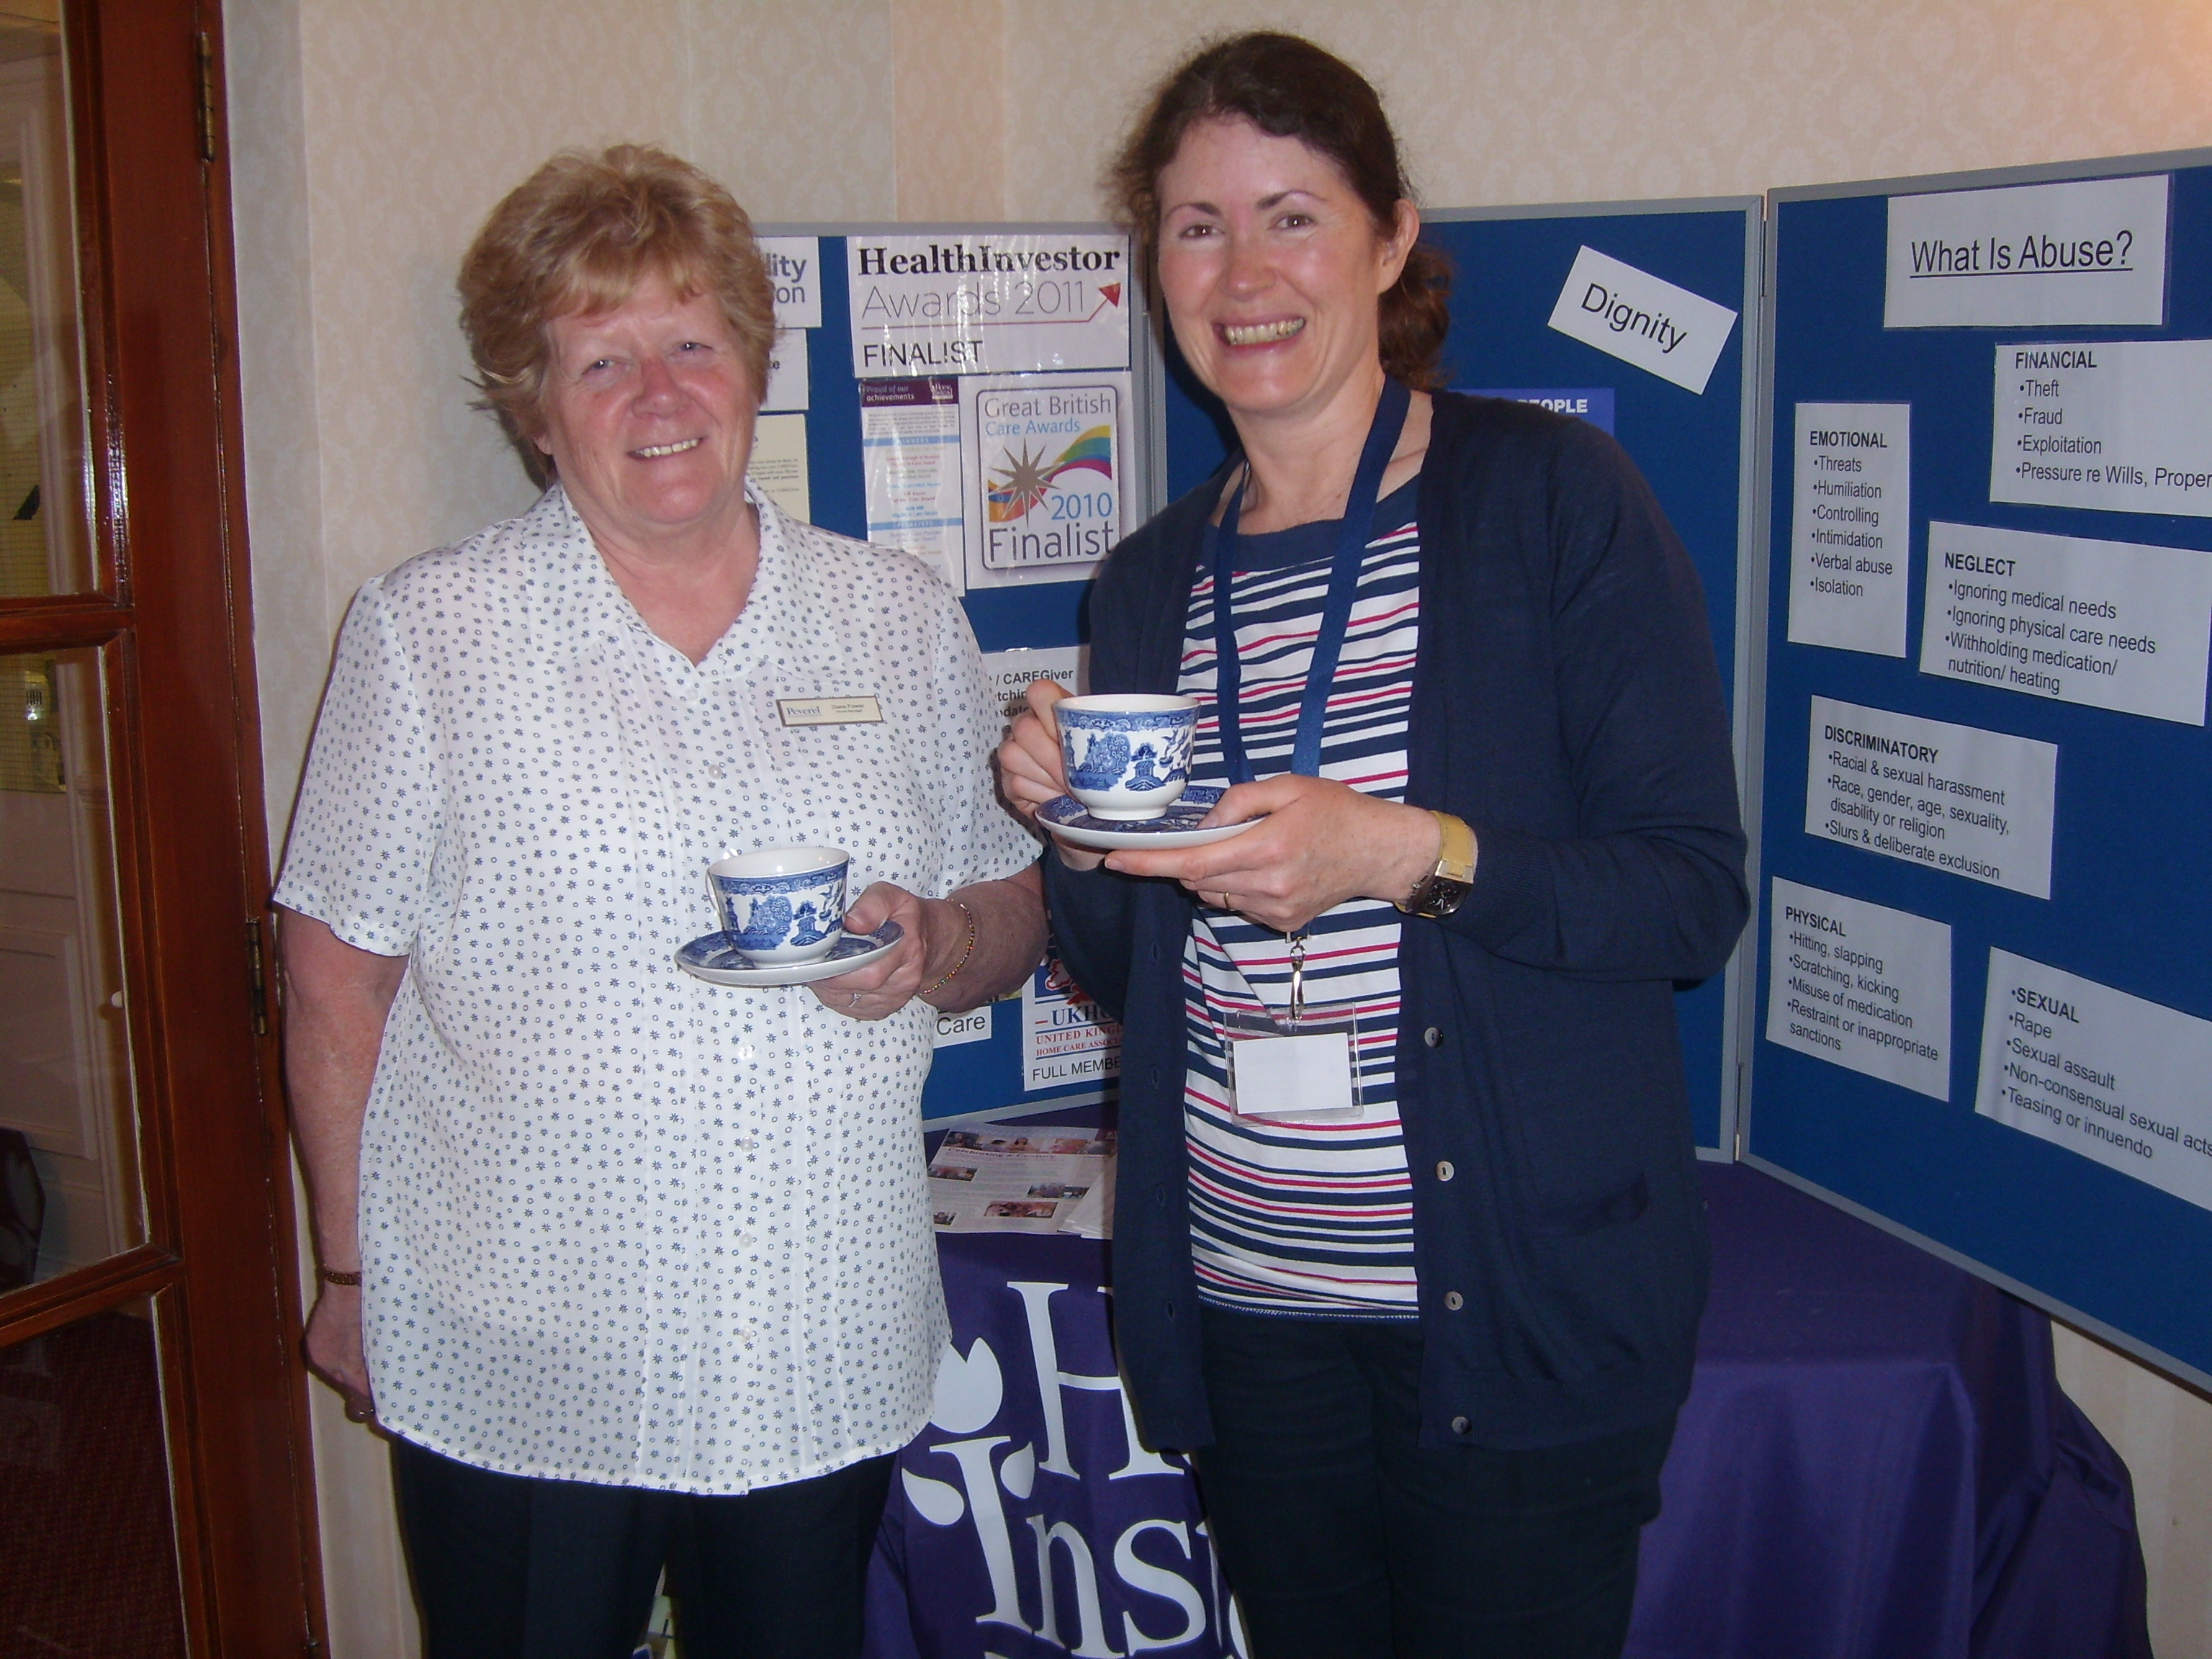 Home Instead Harrogate owner Sheena Van Parys and warden of the Adelphi development Dianne Fowler at the cake stall